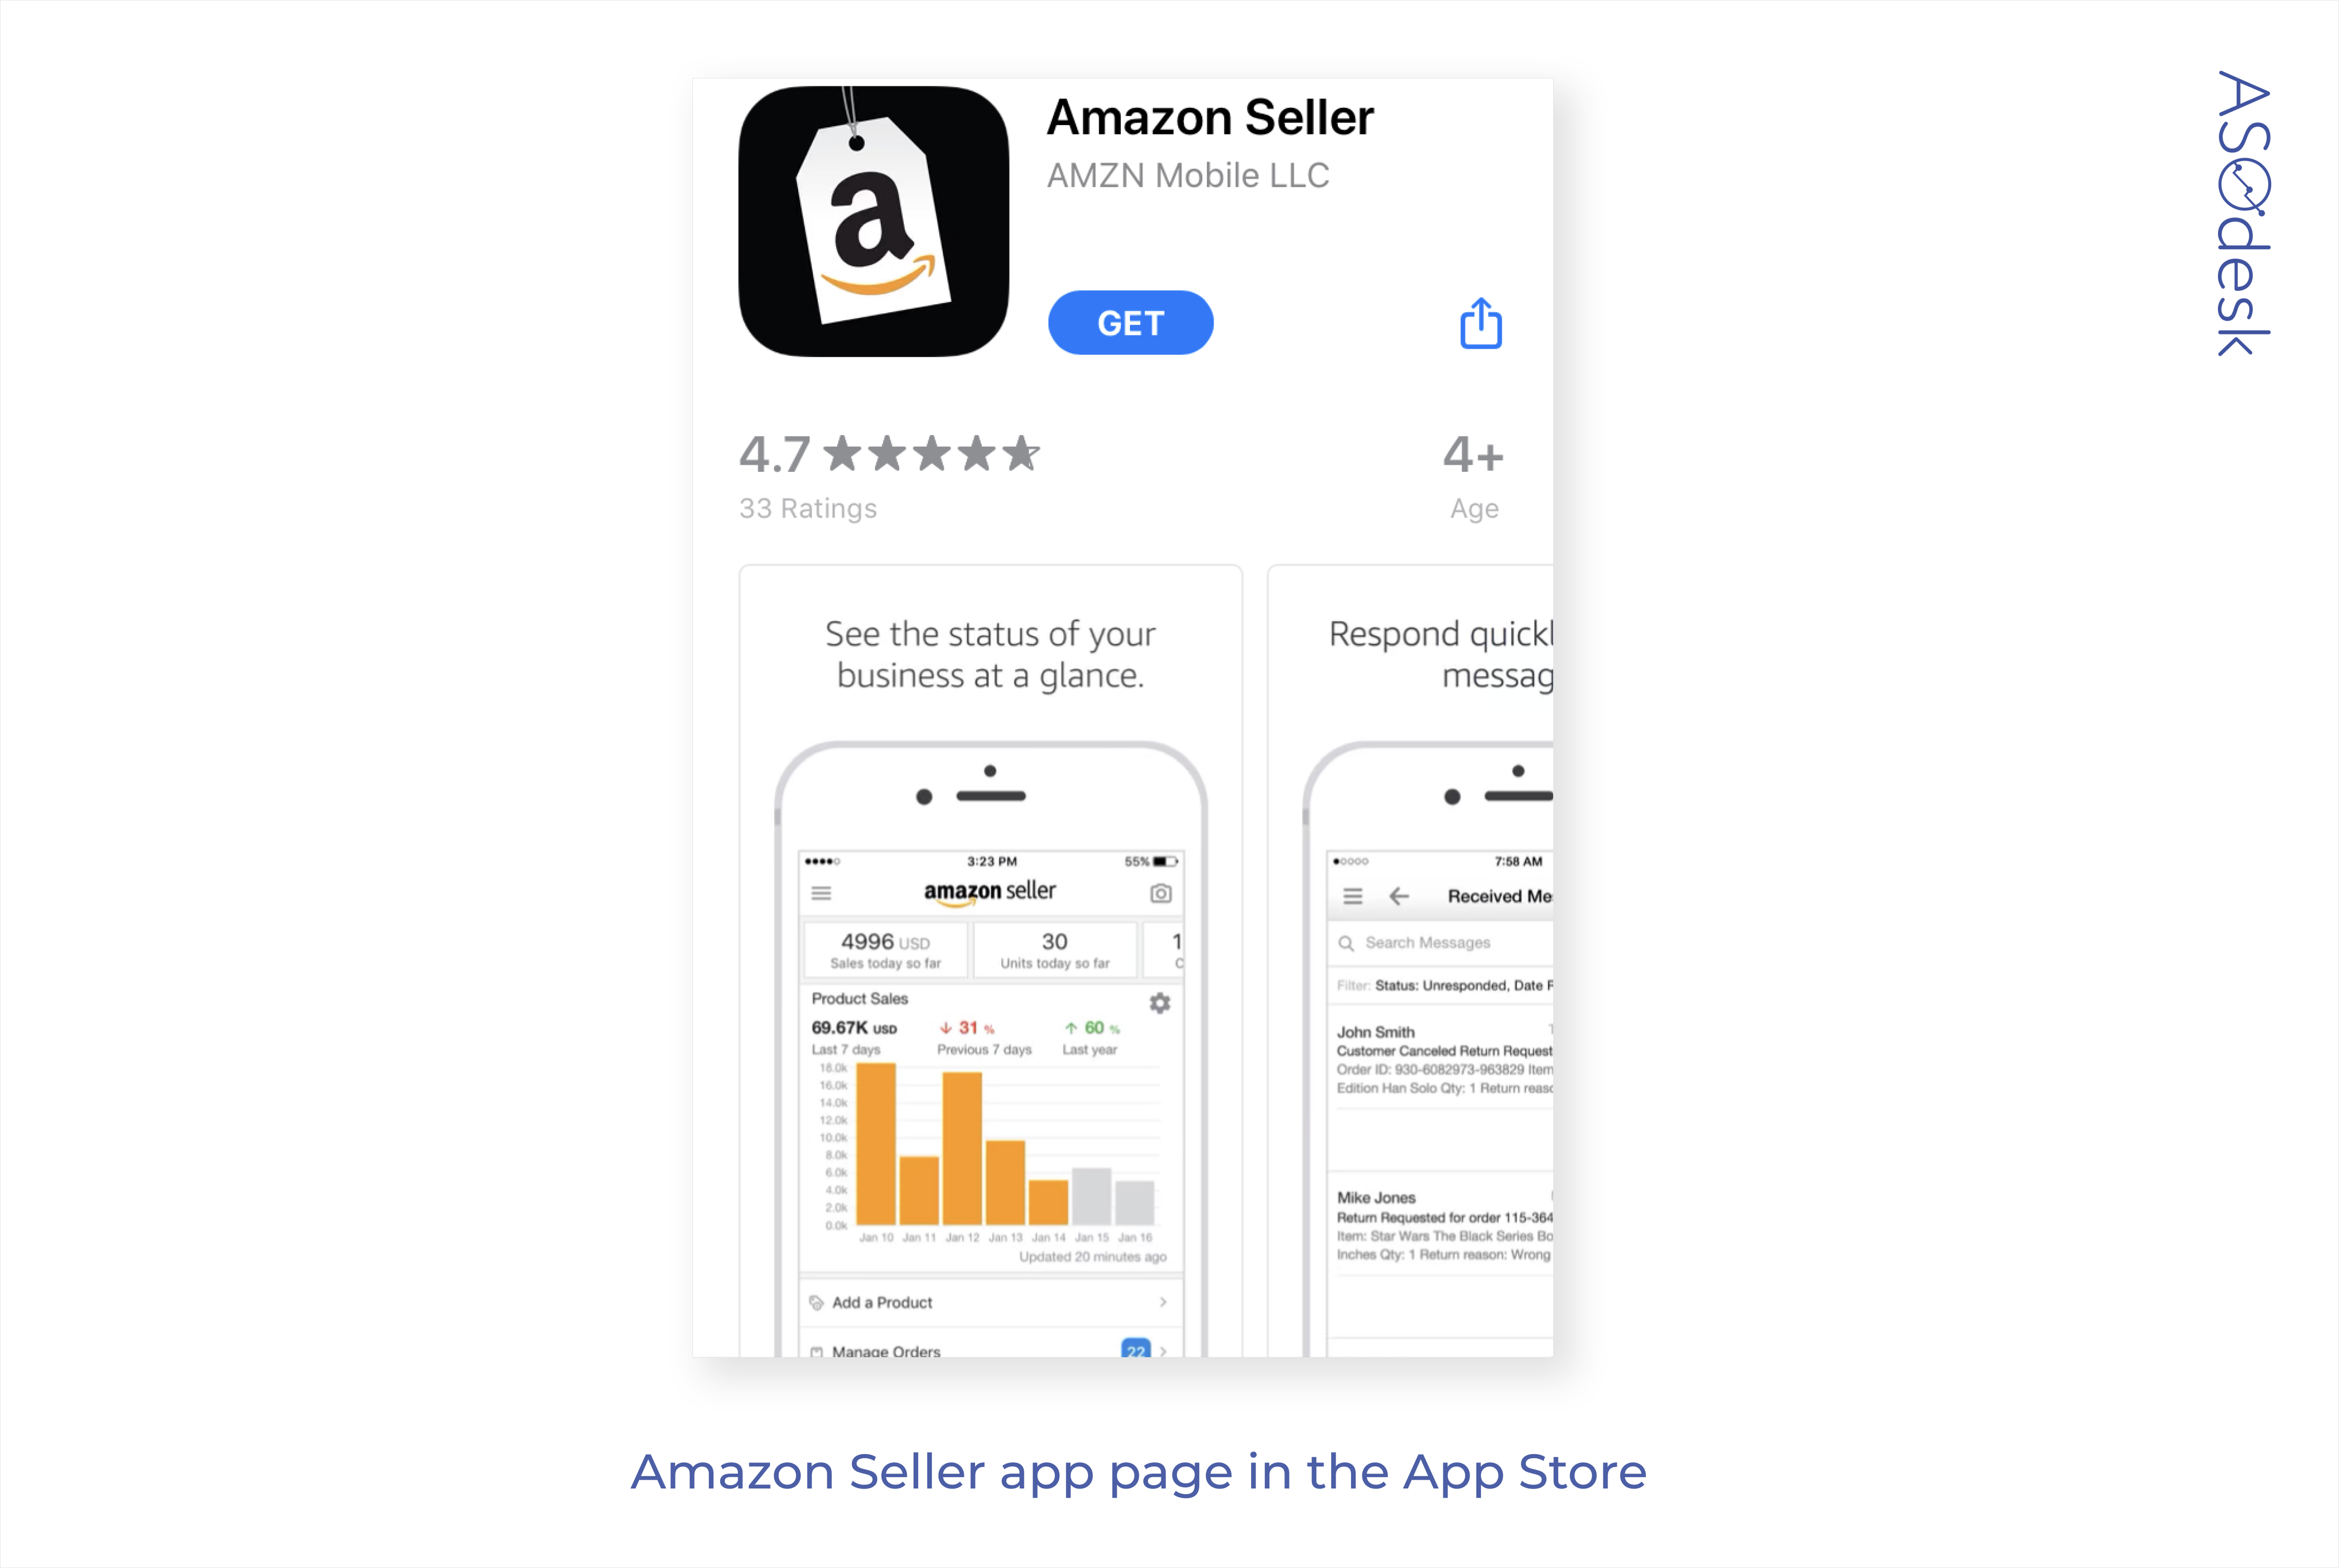 The App Store app page example